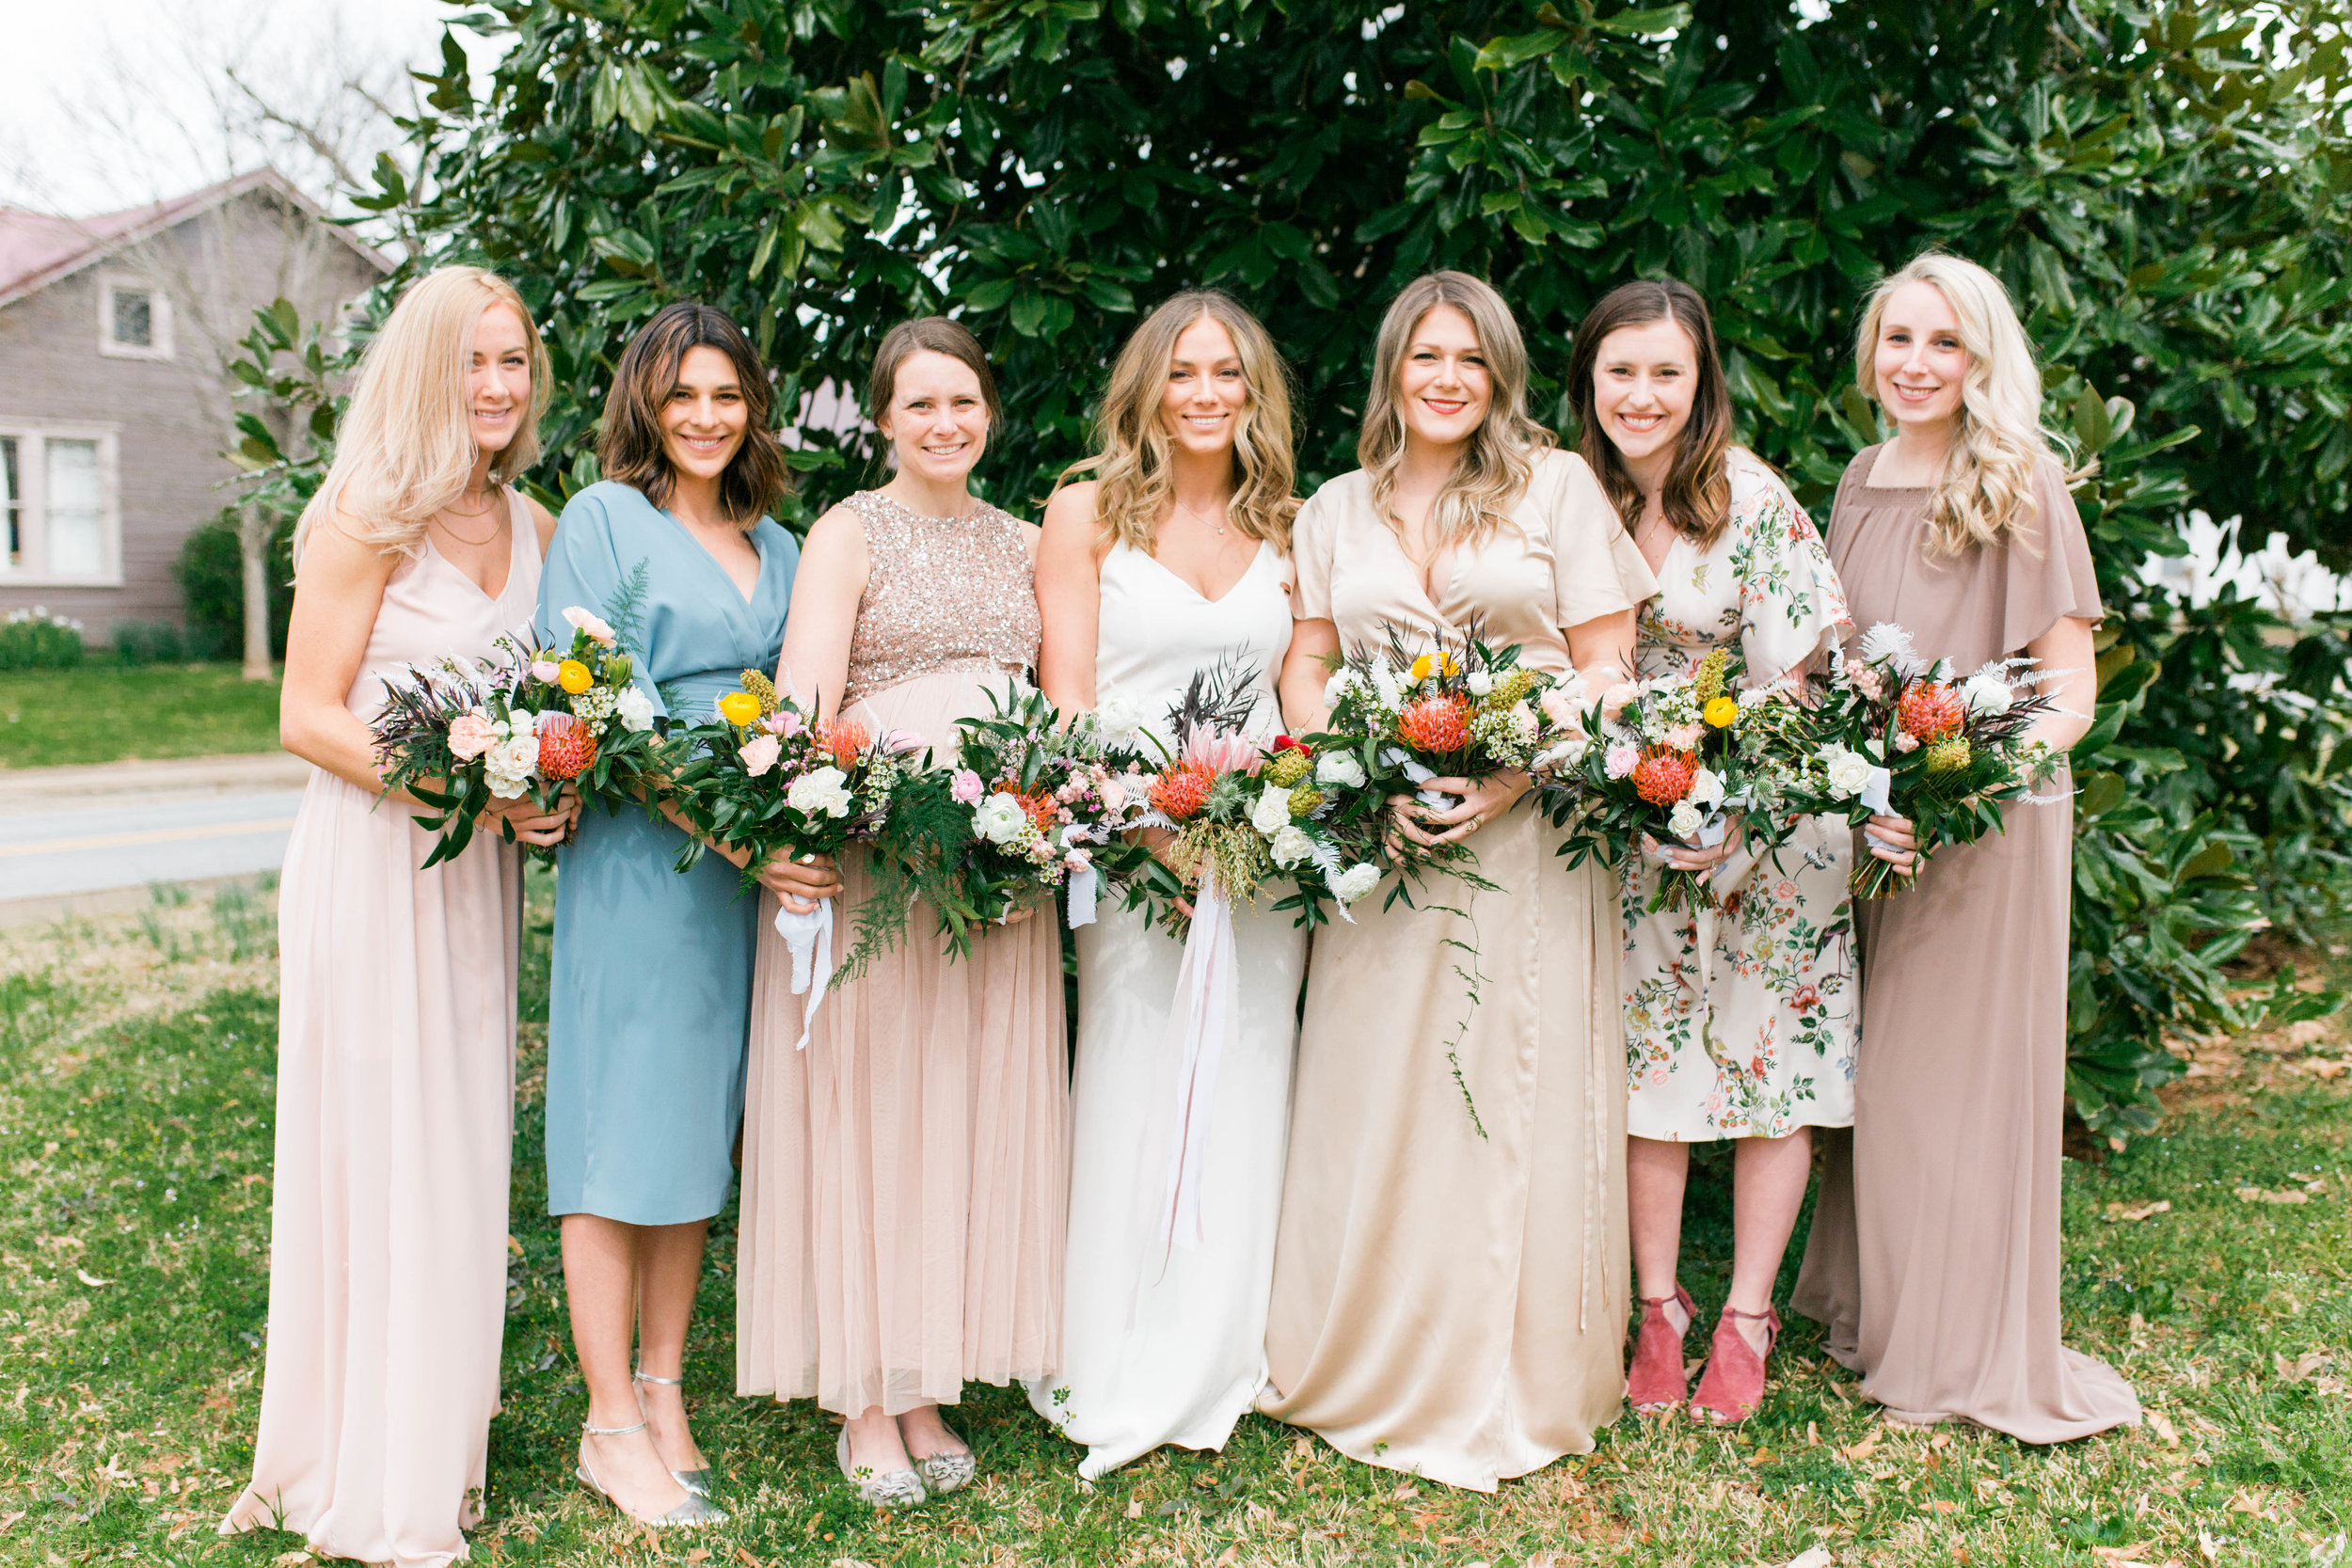 The-Botanical-Studio-Bridal-Party-Boho-Style-Carrollton-Georgia-Florist.jpg